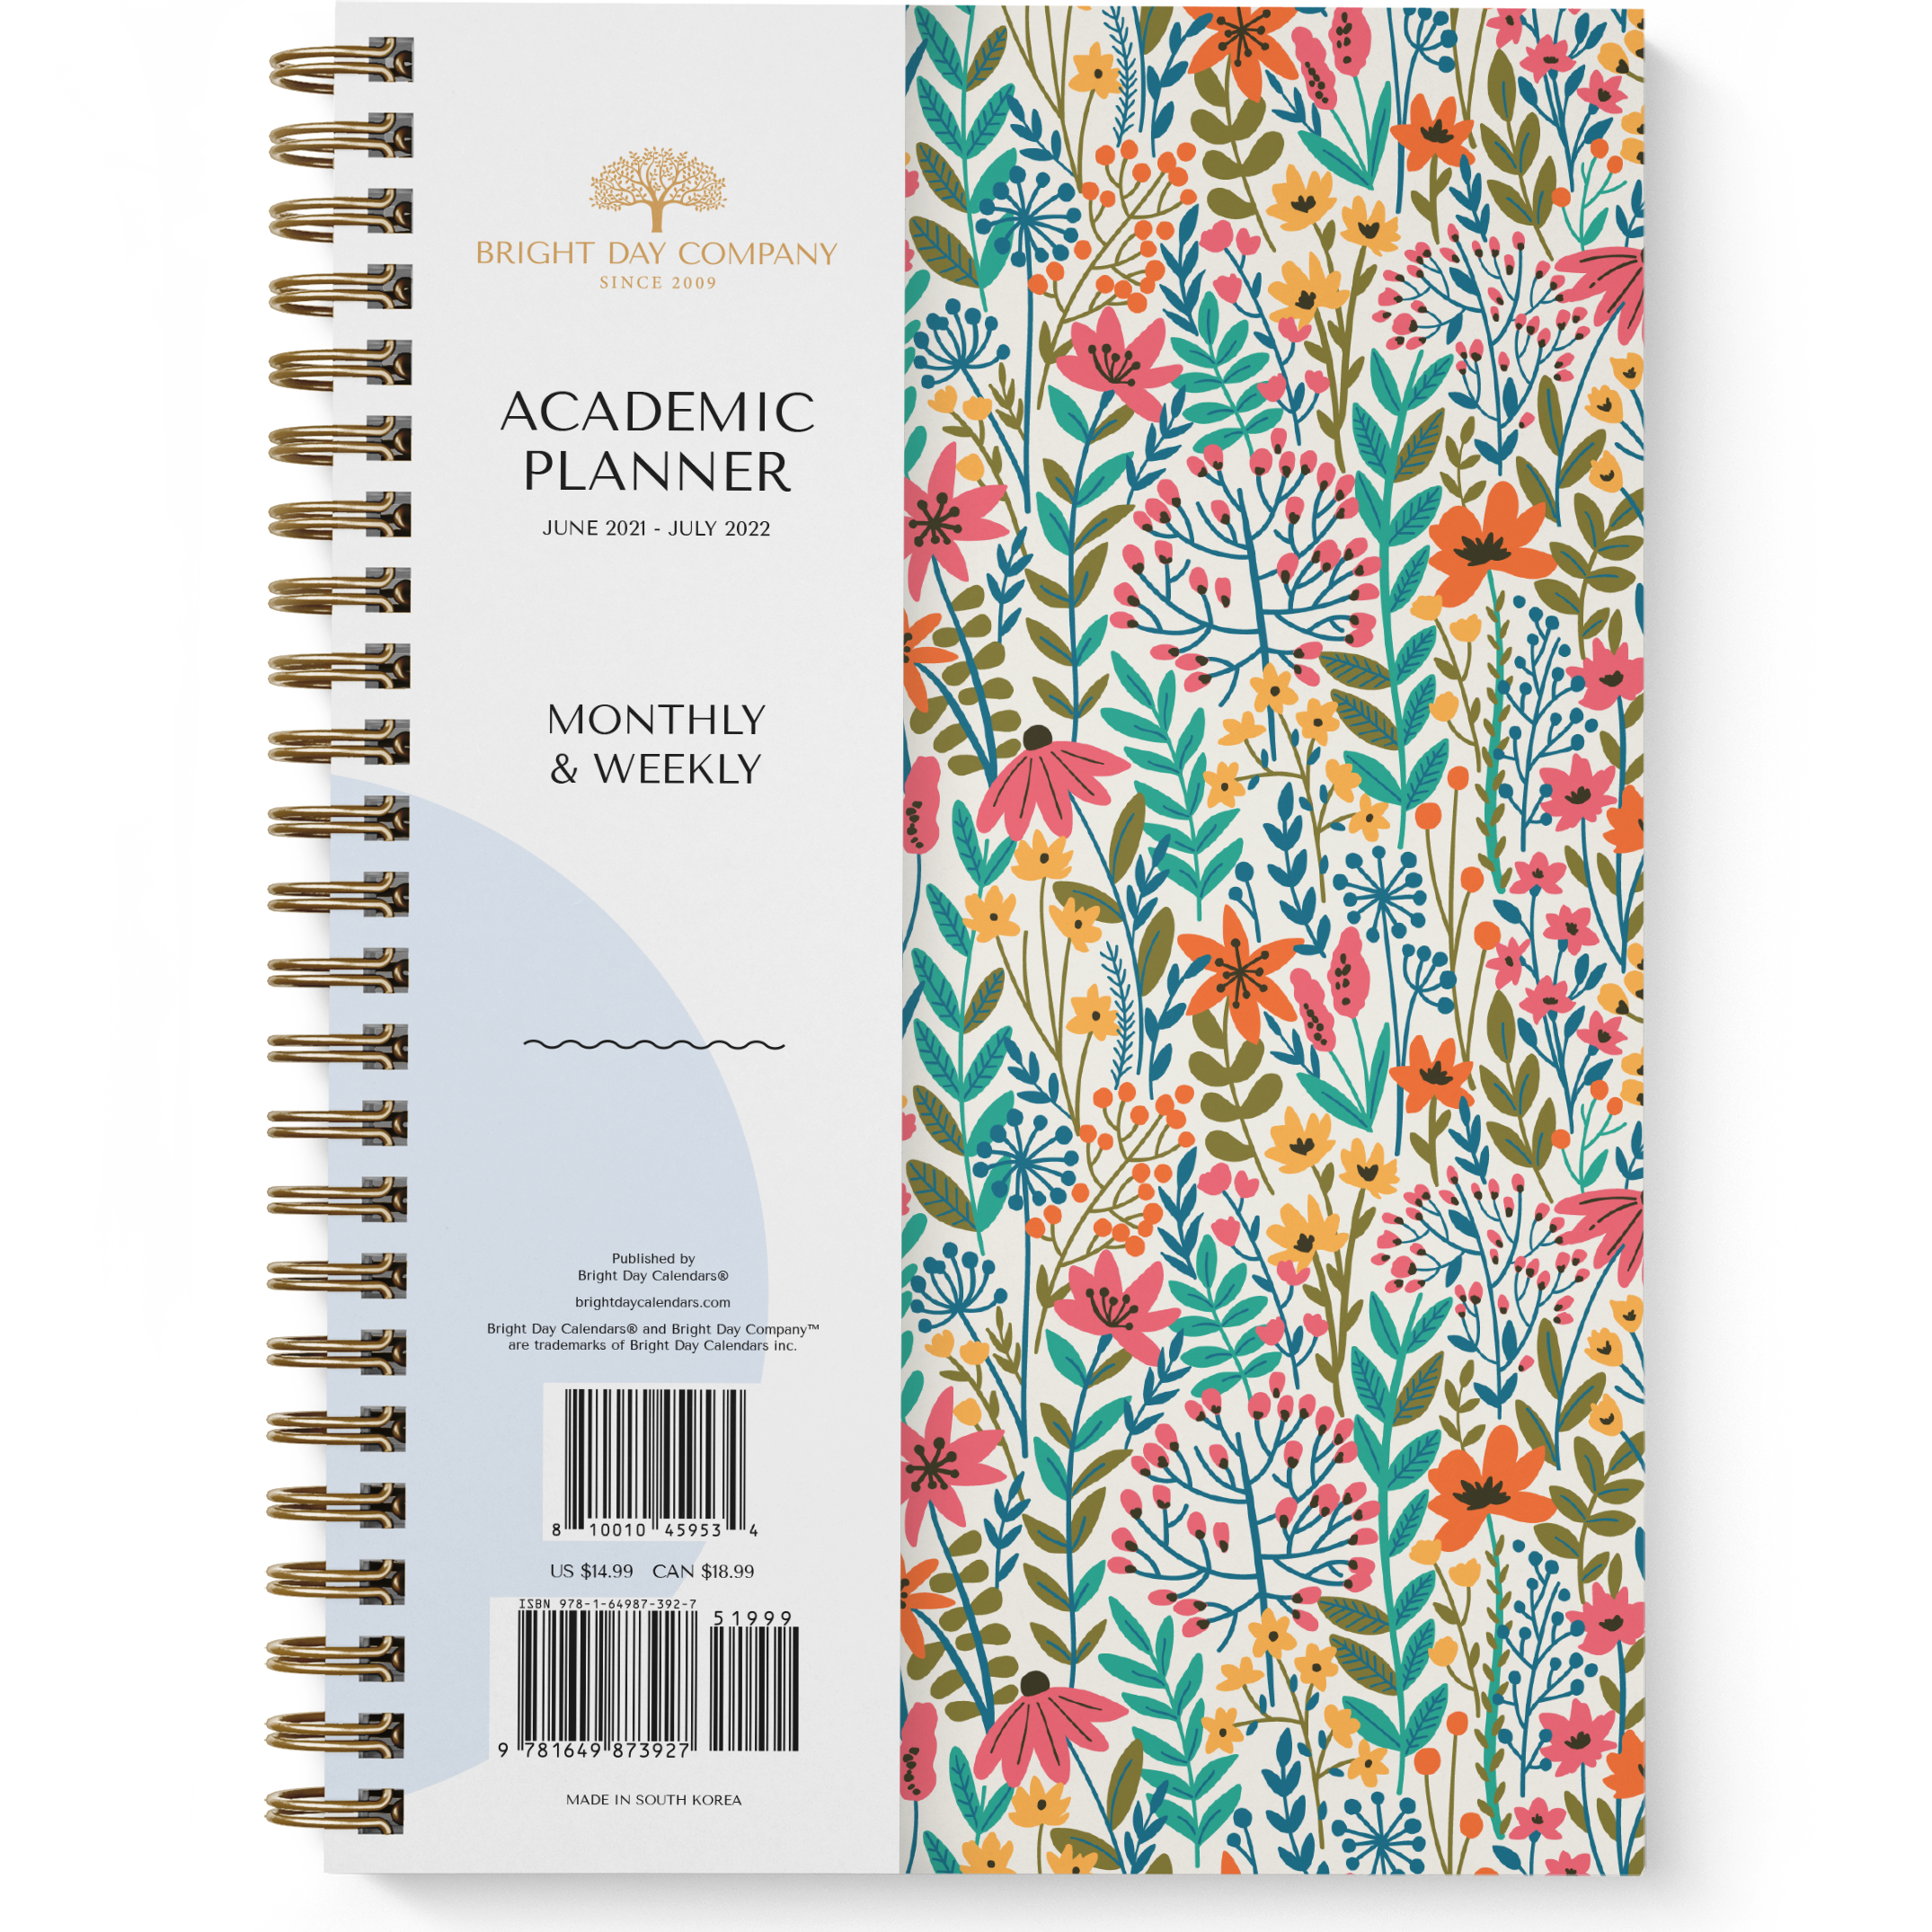 Floral Academic Planner by Bright Day, June 2021 - July 2022, 8.25 x 6.25